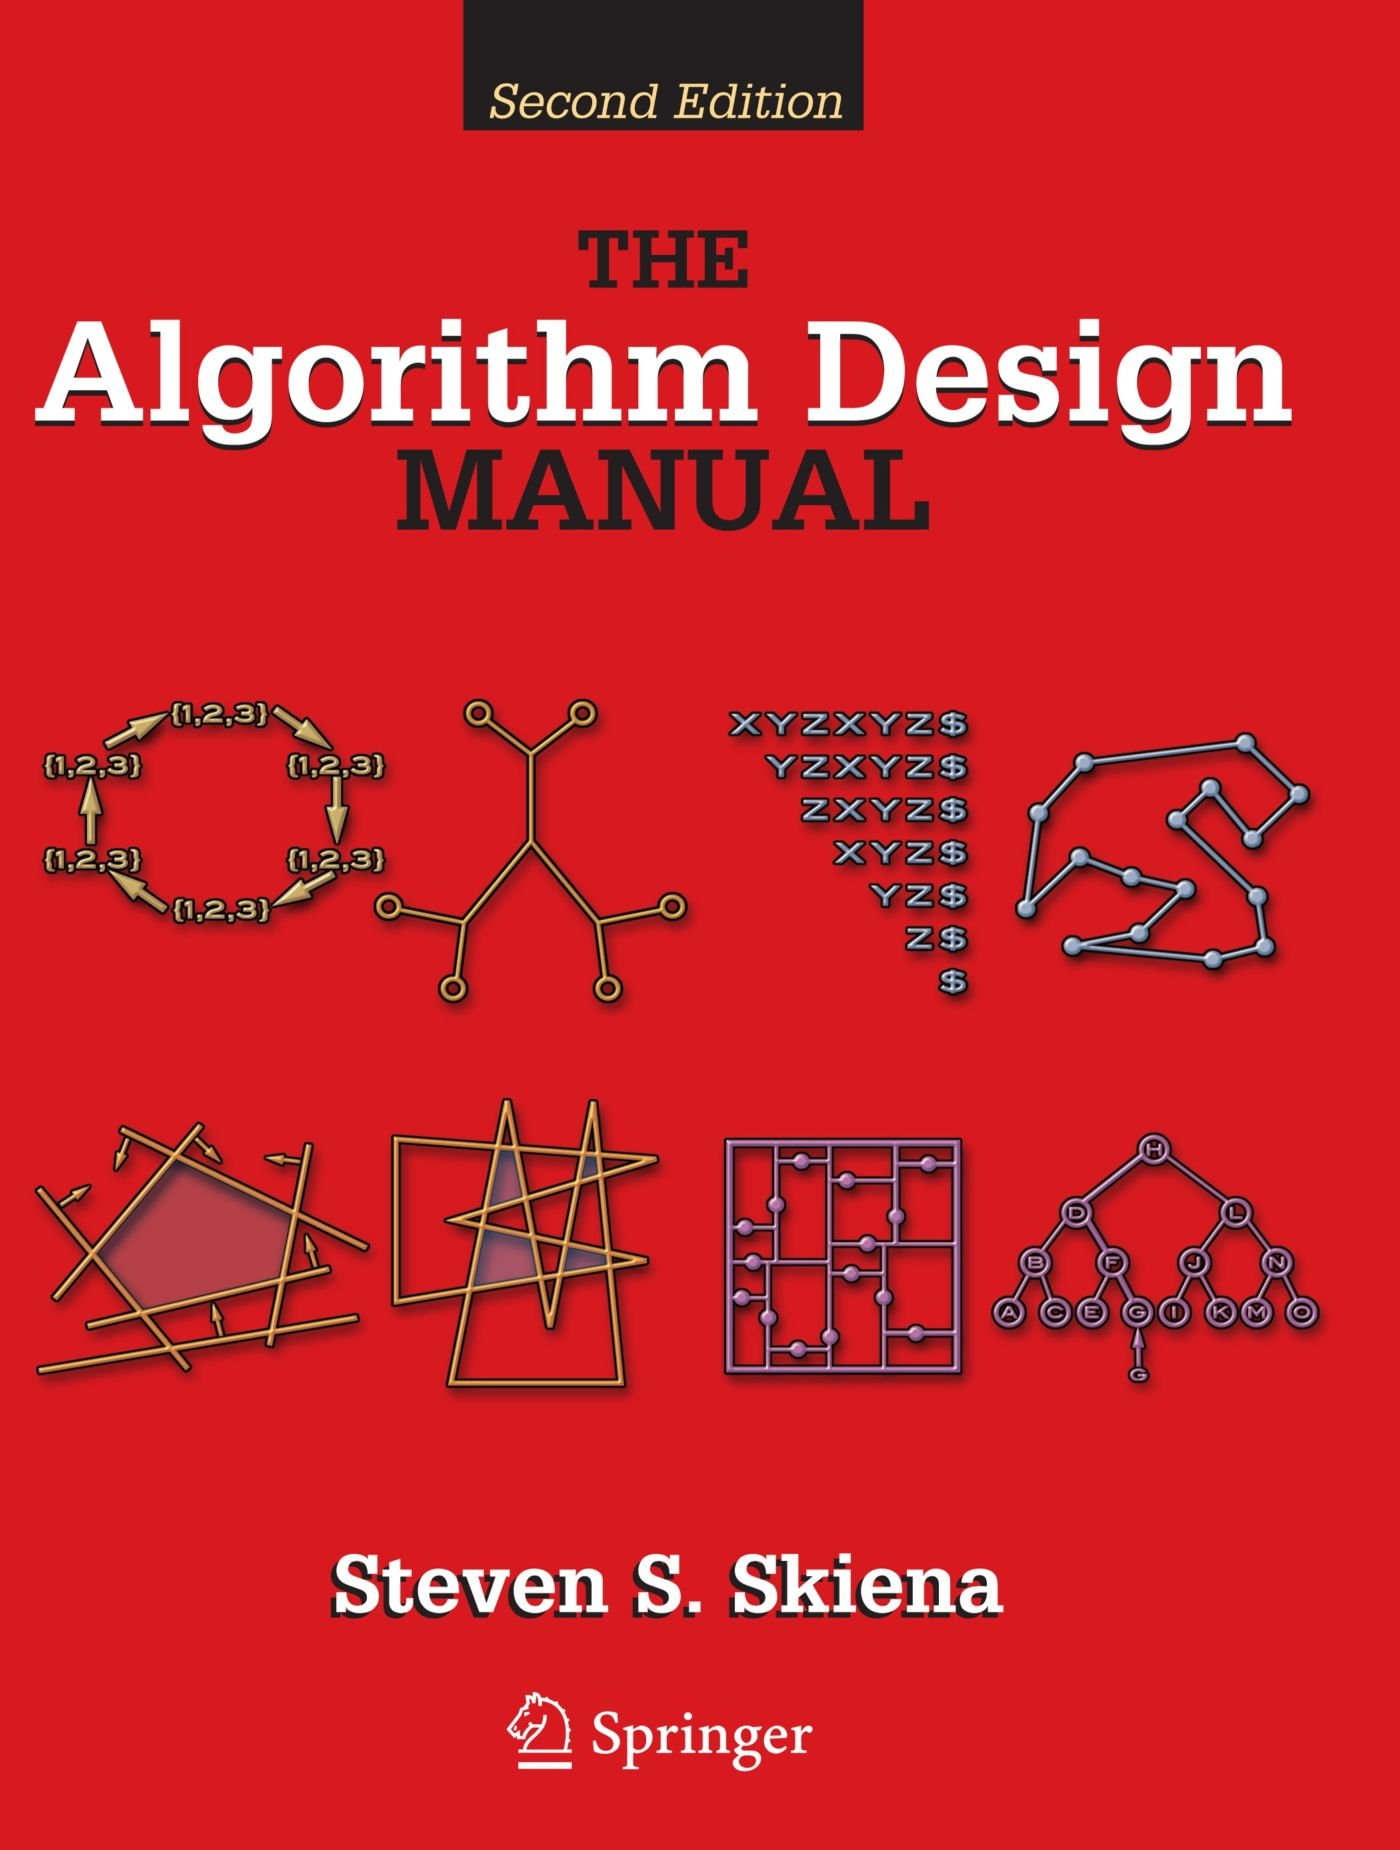 The Algorithm Design Manual by Steven S. Skiena